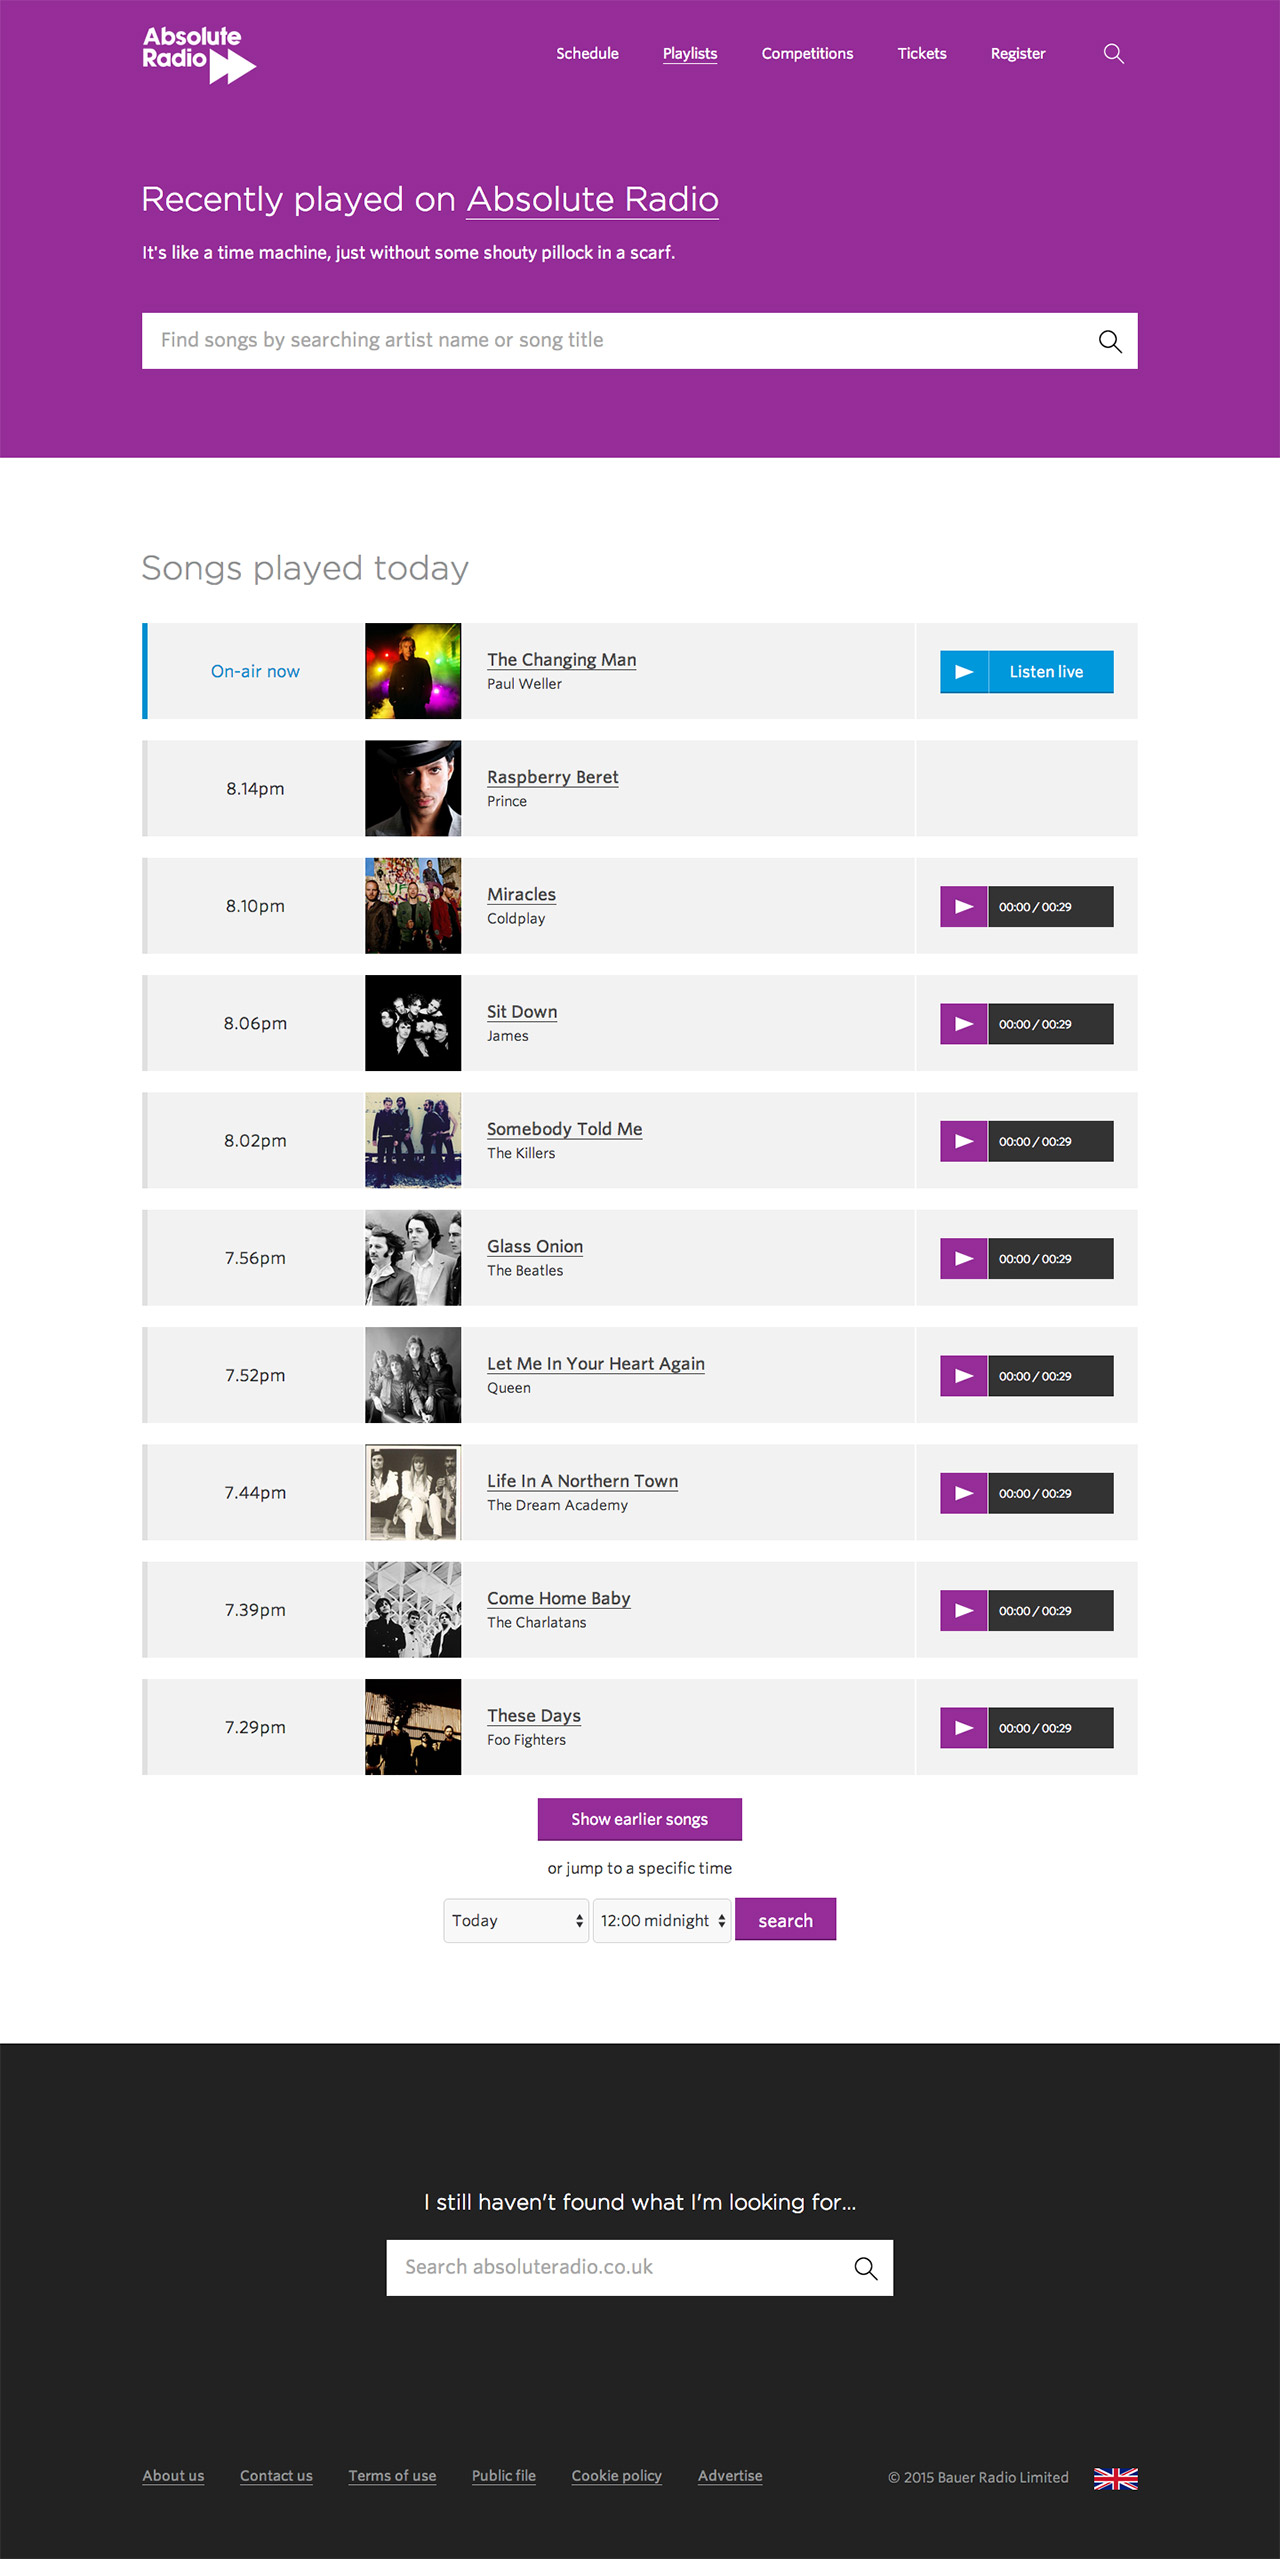 Absolute Radio recently played list screenshot